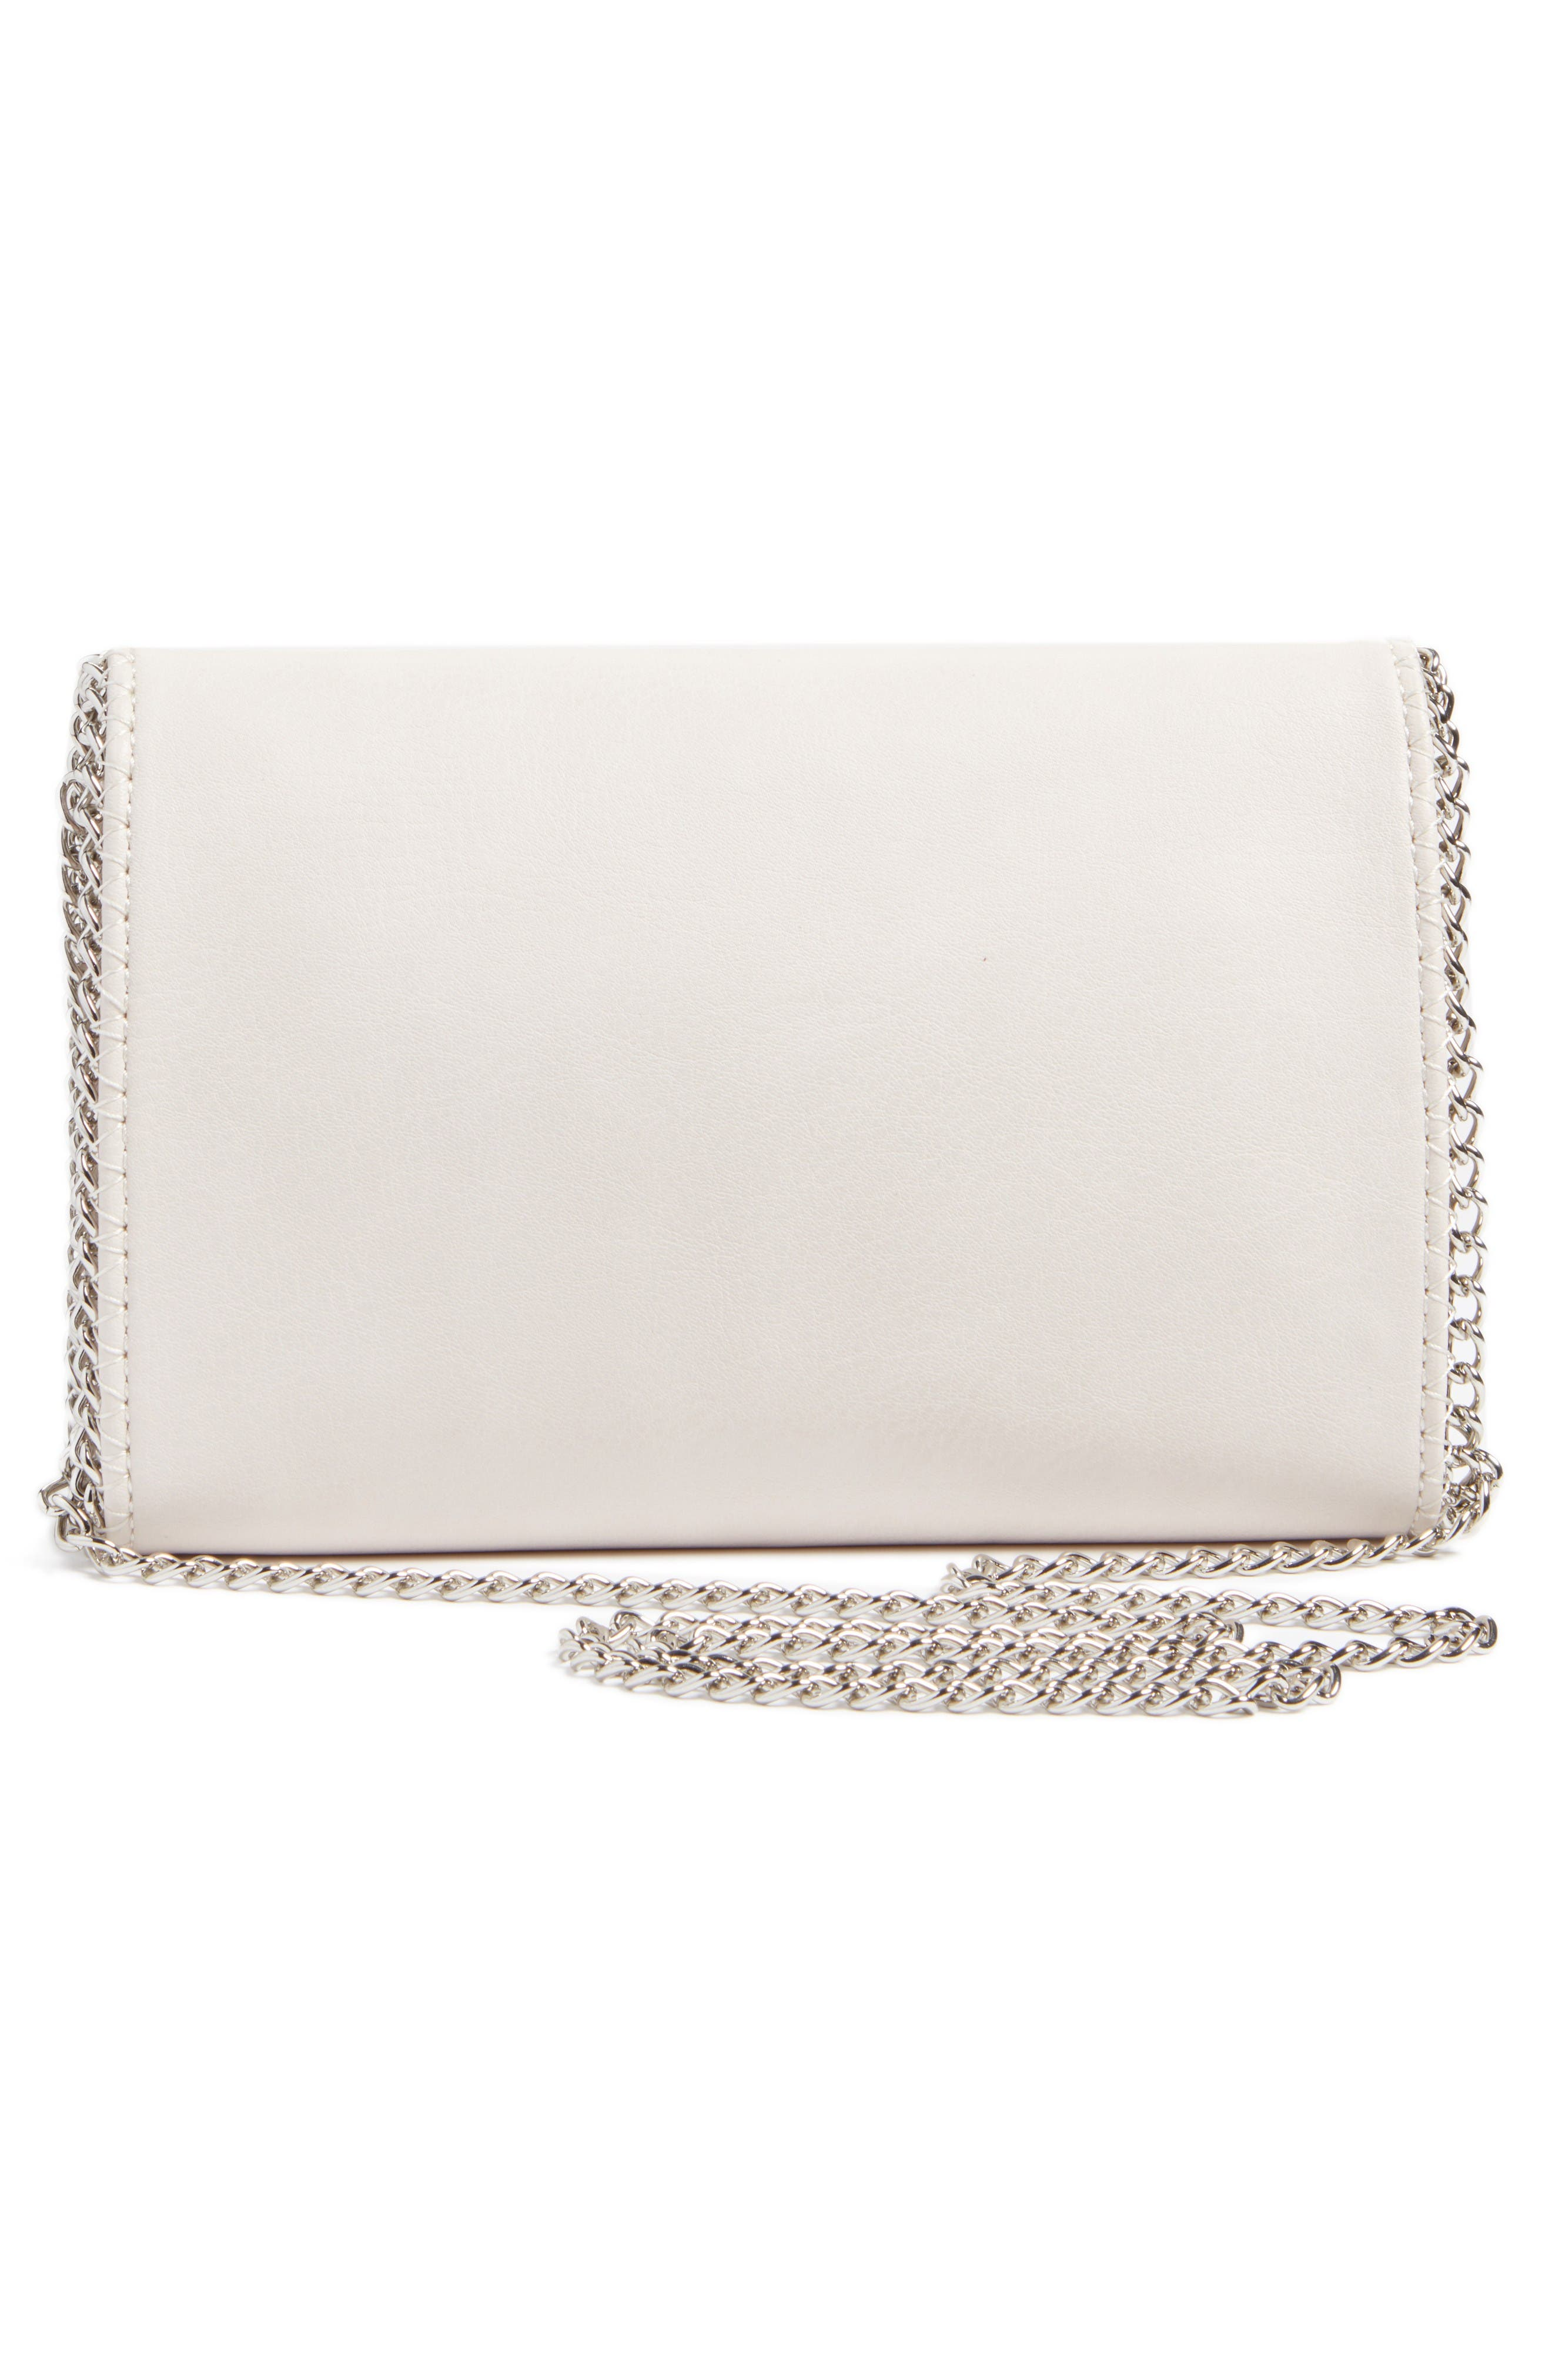 Alternate Image 3  - Chelsea28 Embellished Faux Leather Convertible Clutch